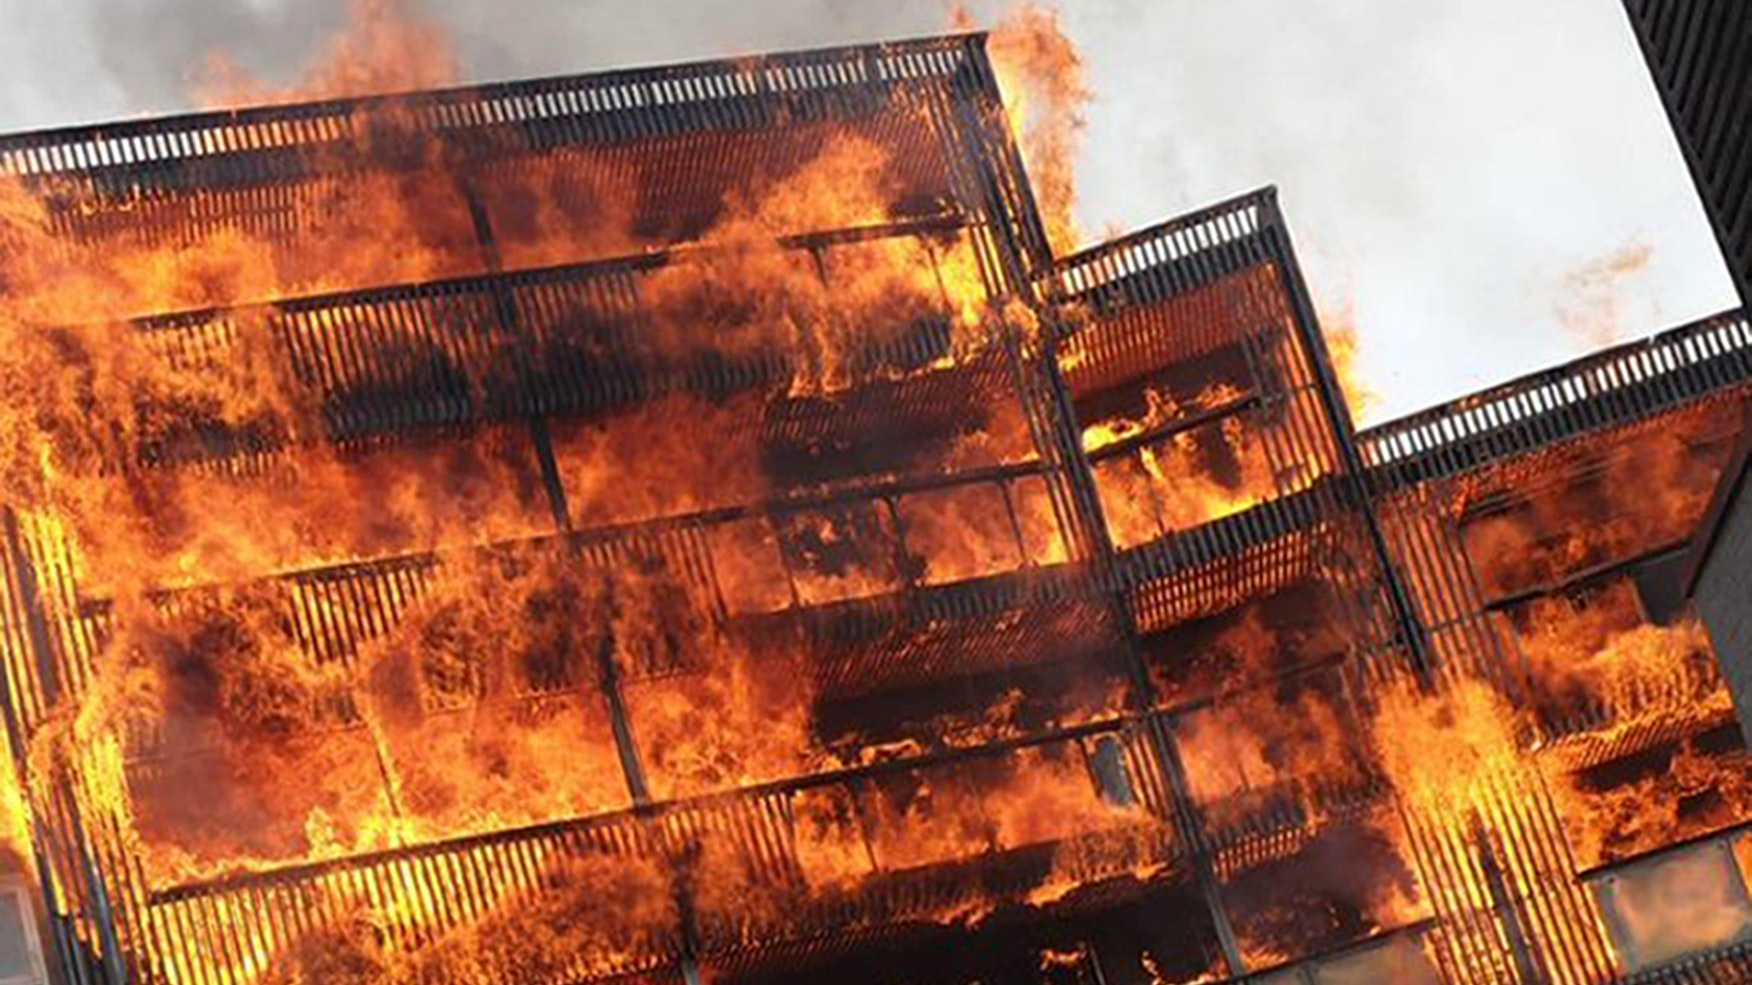 A hundred firefighters battle vicious fire at block of flats in London